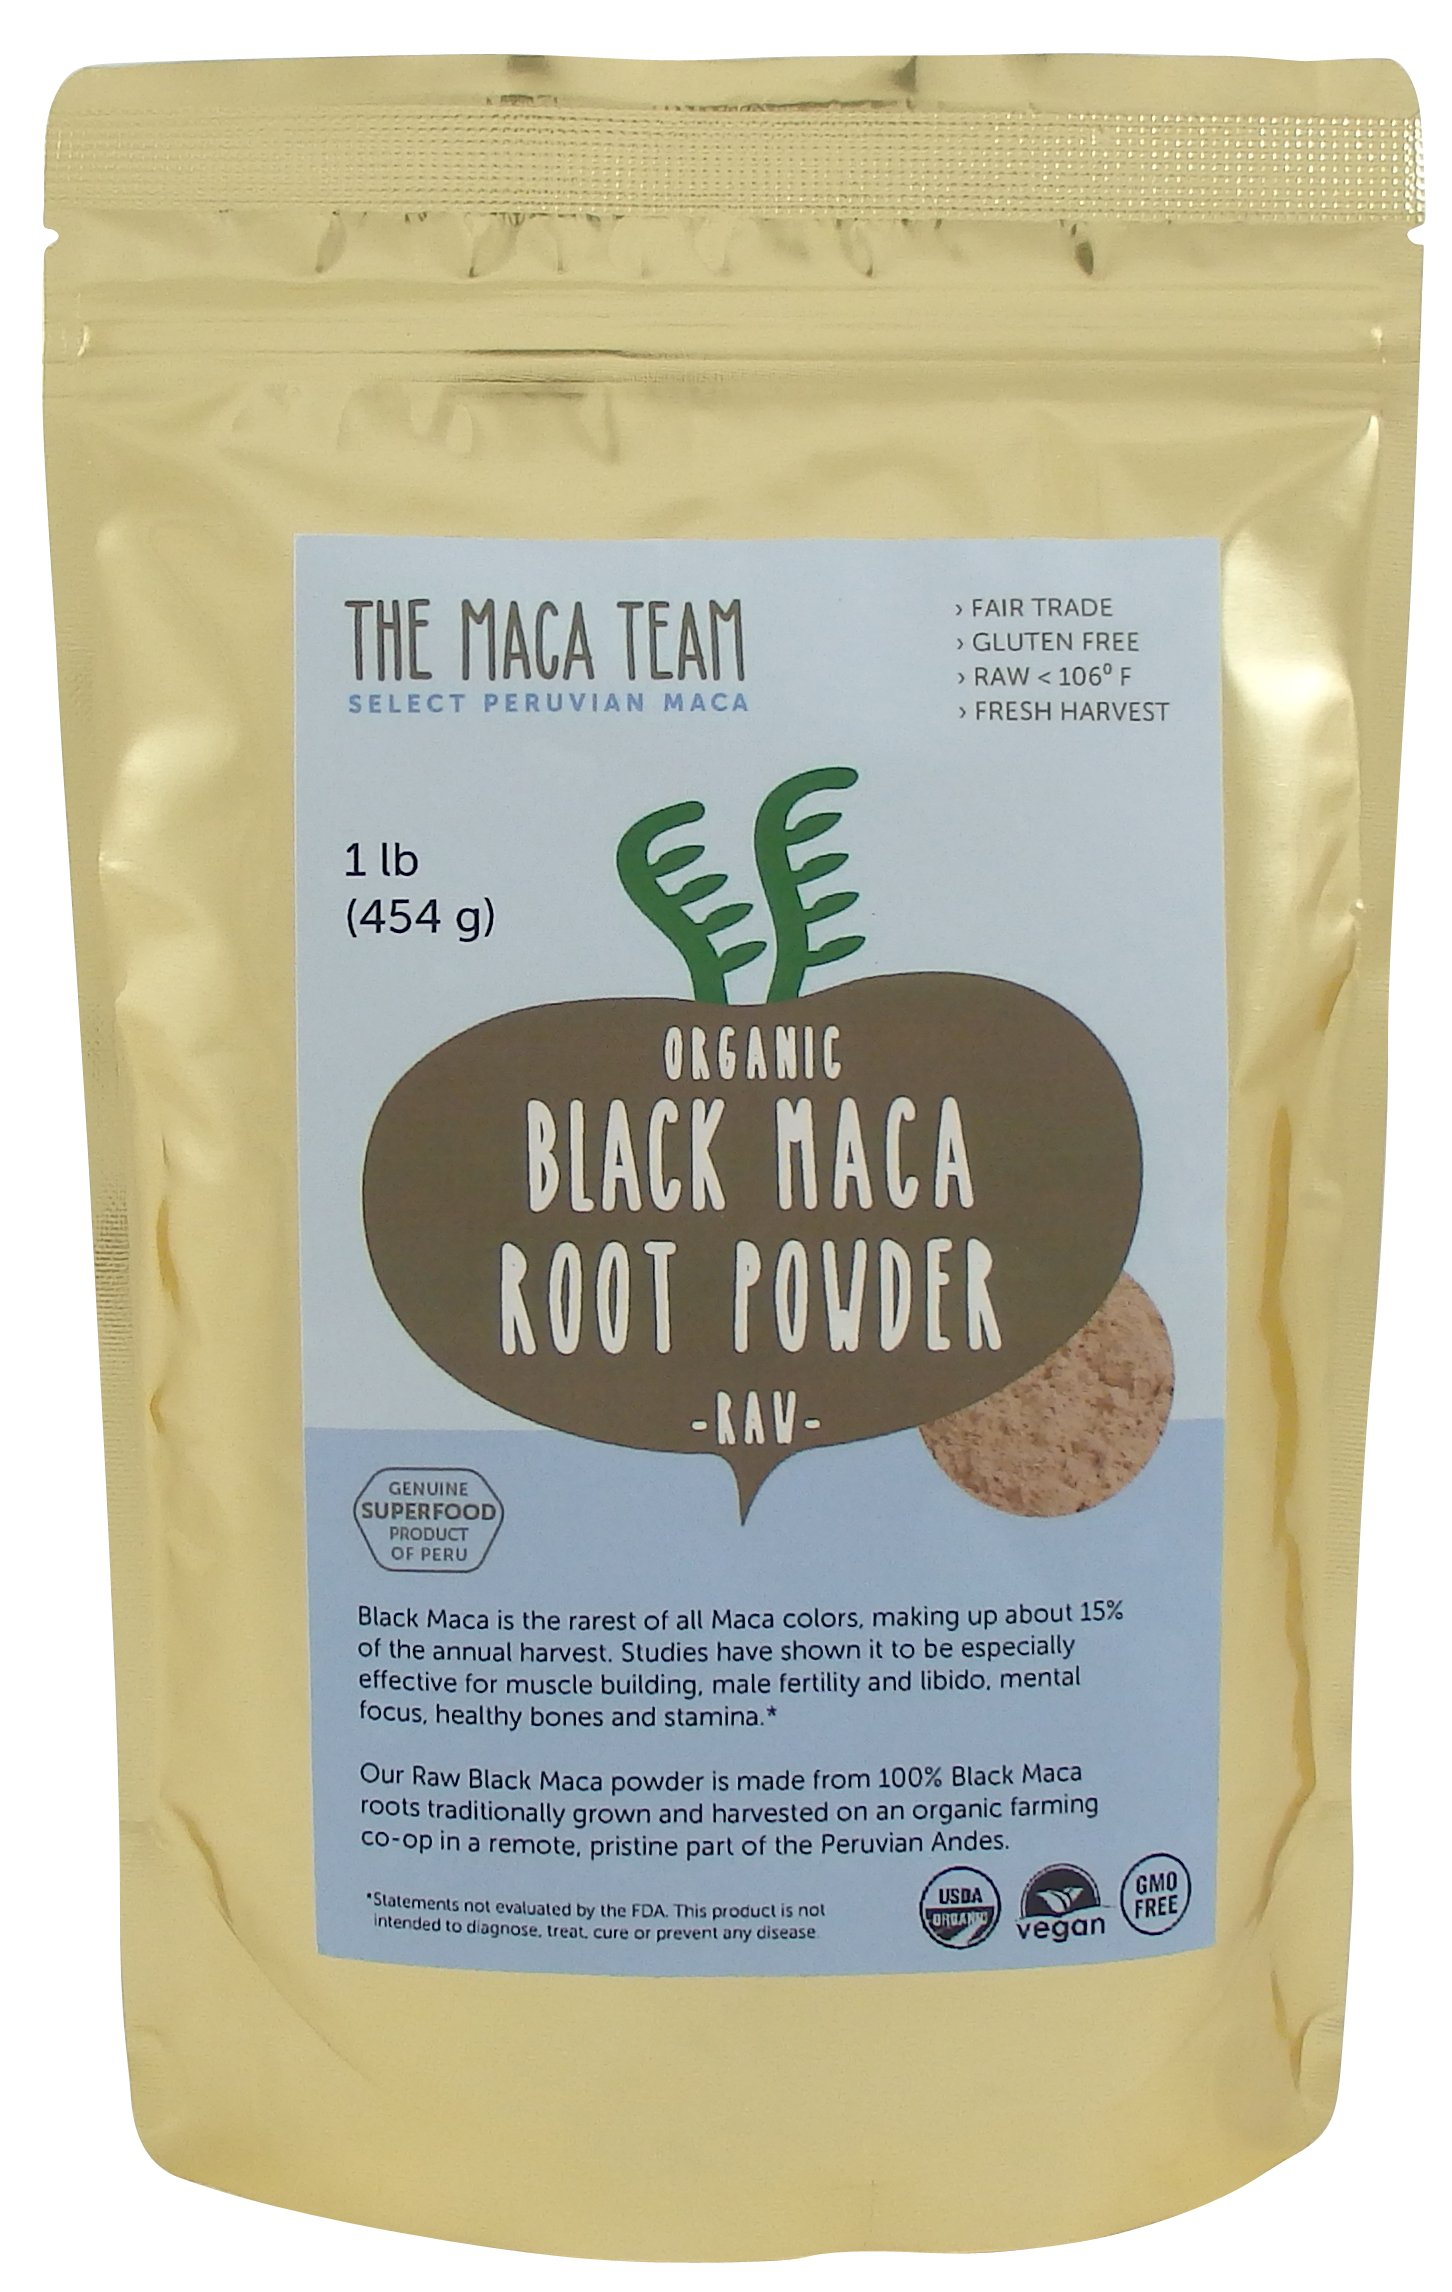 Raw Organic Black Maca Powder, Fresh Harvest From Peru, Fair Trade, Gmo-free, Vegan, Gluten Free, 1 Lb - 50 Servings